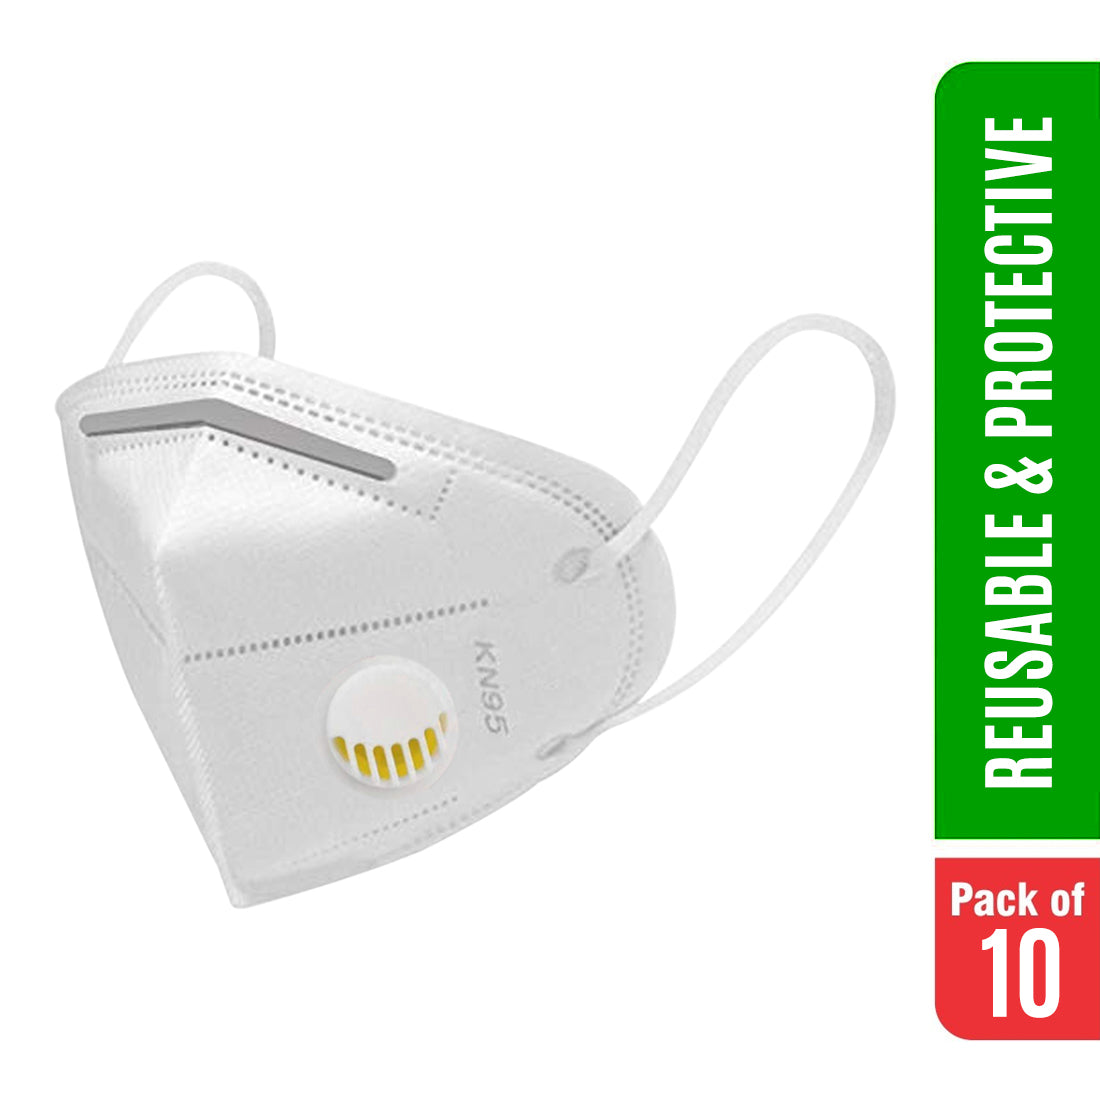 KN95 Reusable Anti Pollution/Bacterial Premium Quality Face Mask With Respirator